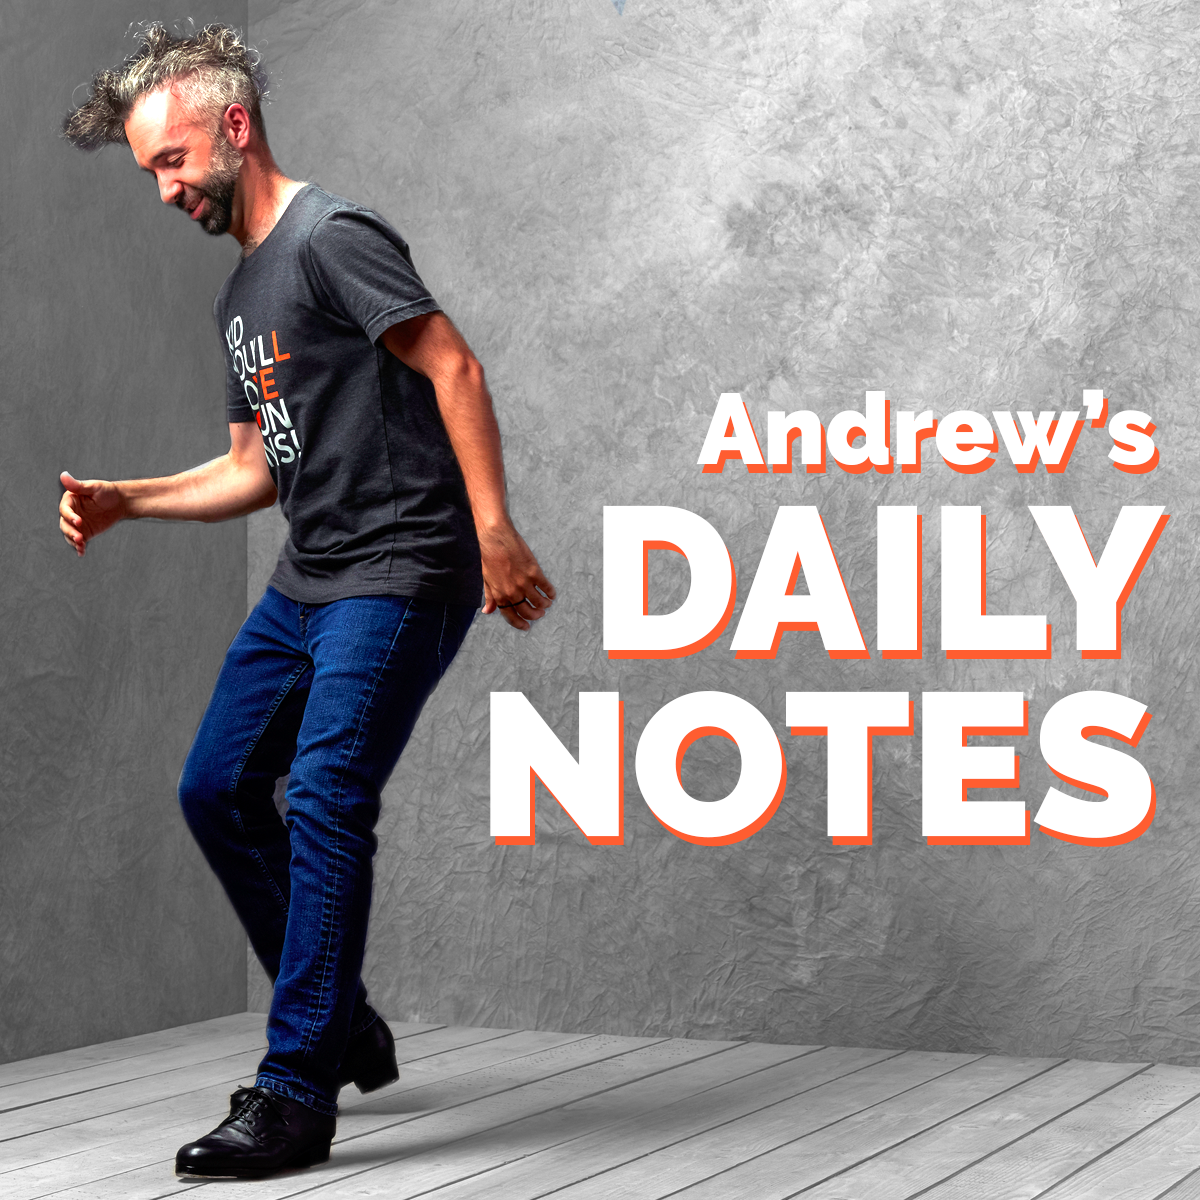 Andrew's Daily Notes